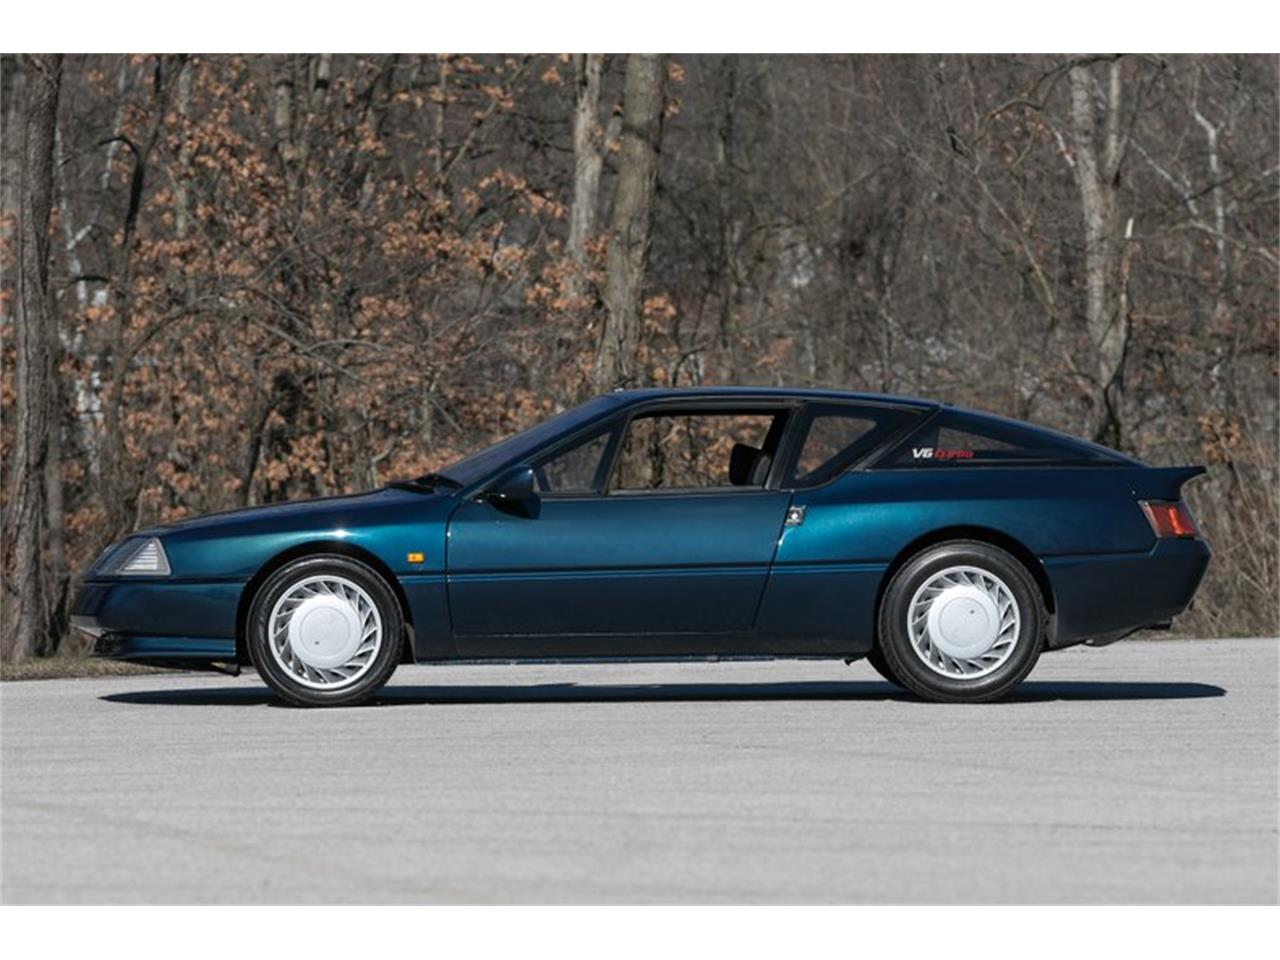 Large Picture of '90 Renault Alpine located in St. Charles Missouri Offered by Fast Lane Classic Cars Inc. - N1T4